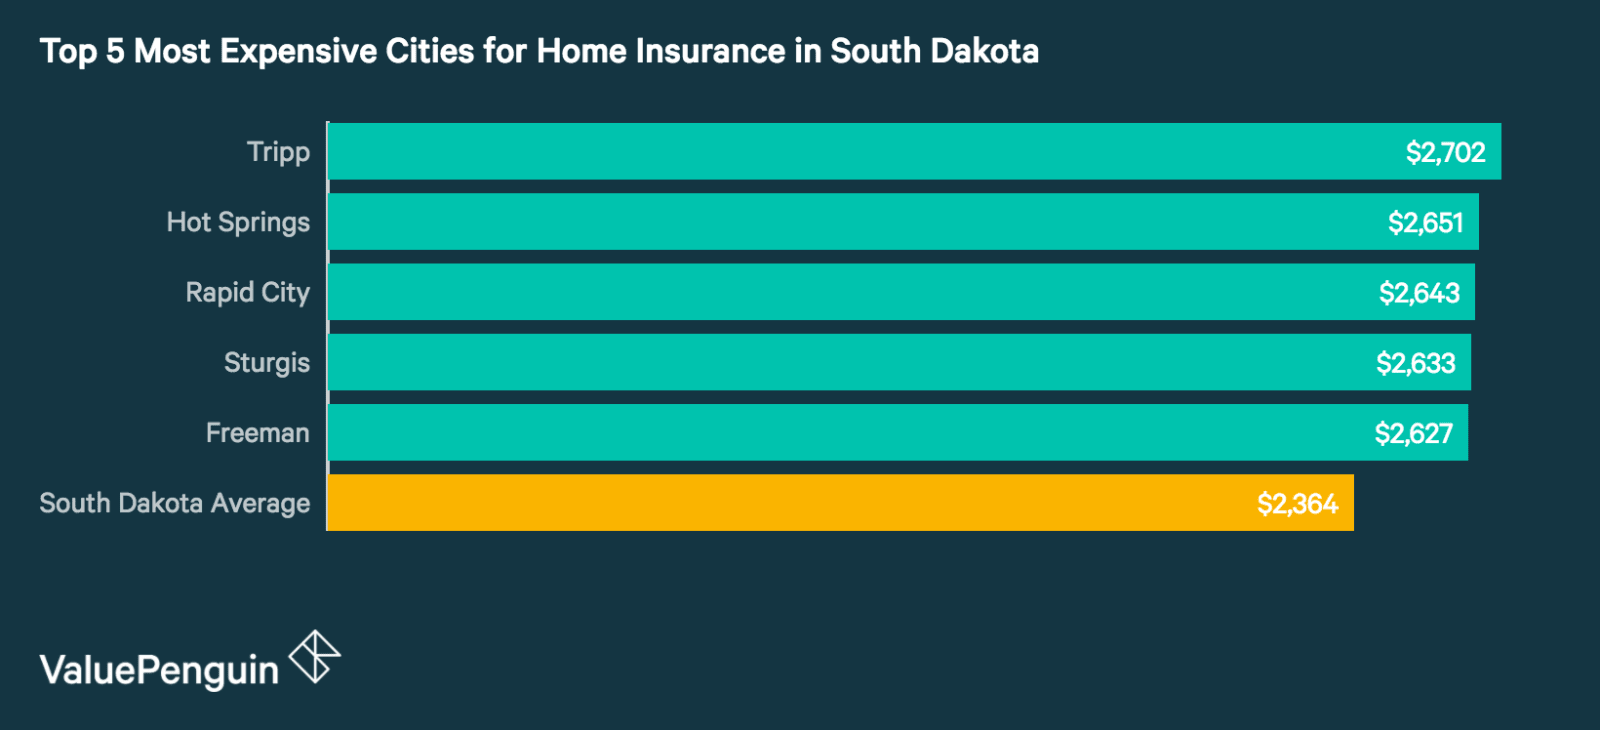 Top 5 Most Expensive Cities in South Dakota for Homeowners Insurance